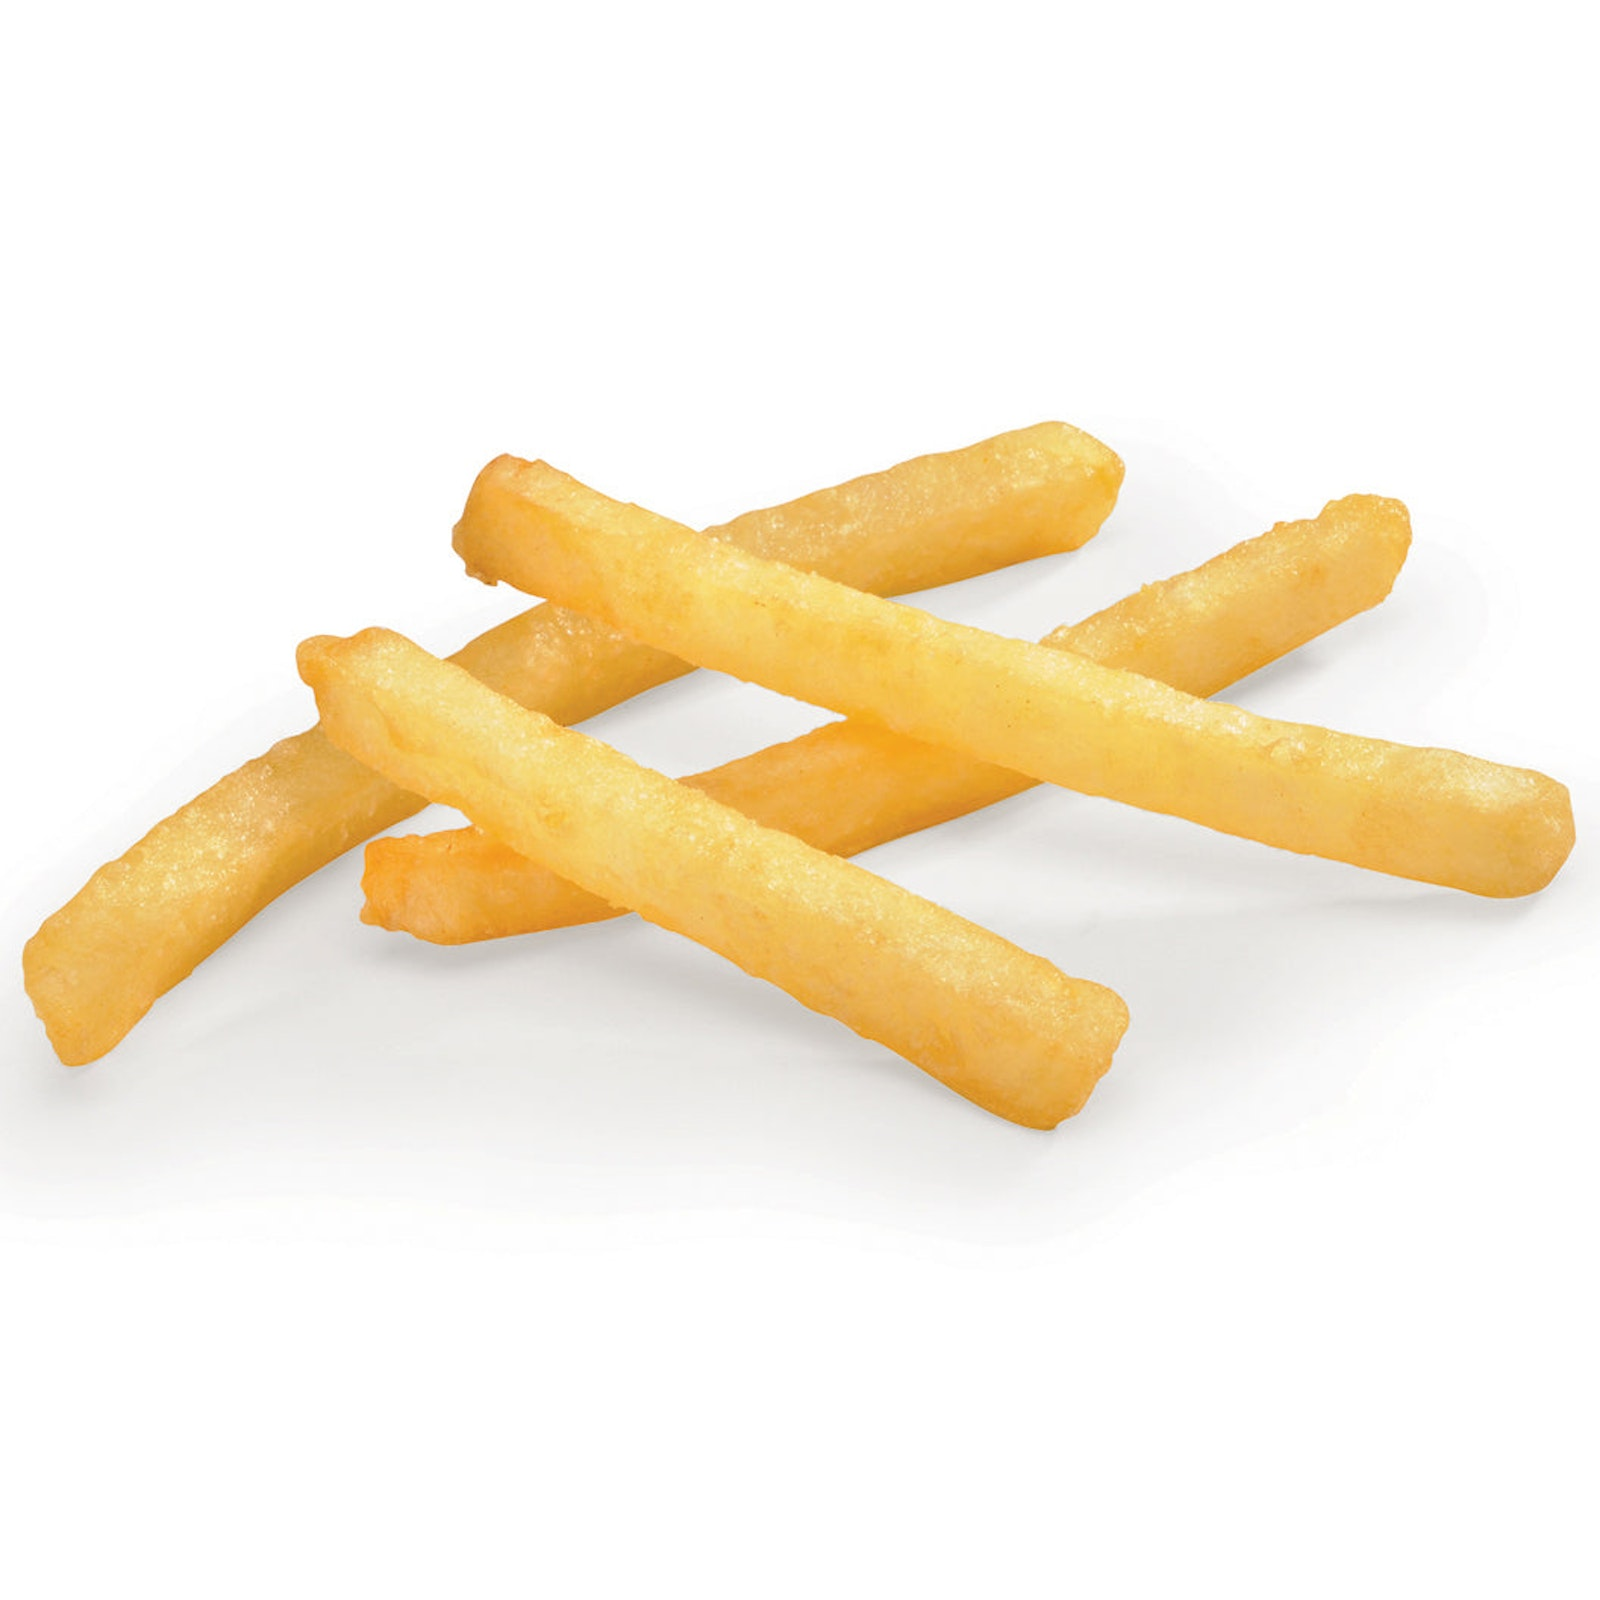 McCain Thick Coated Fries 3/8